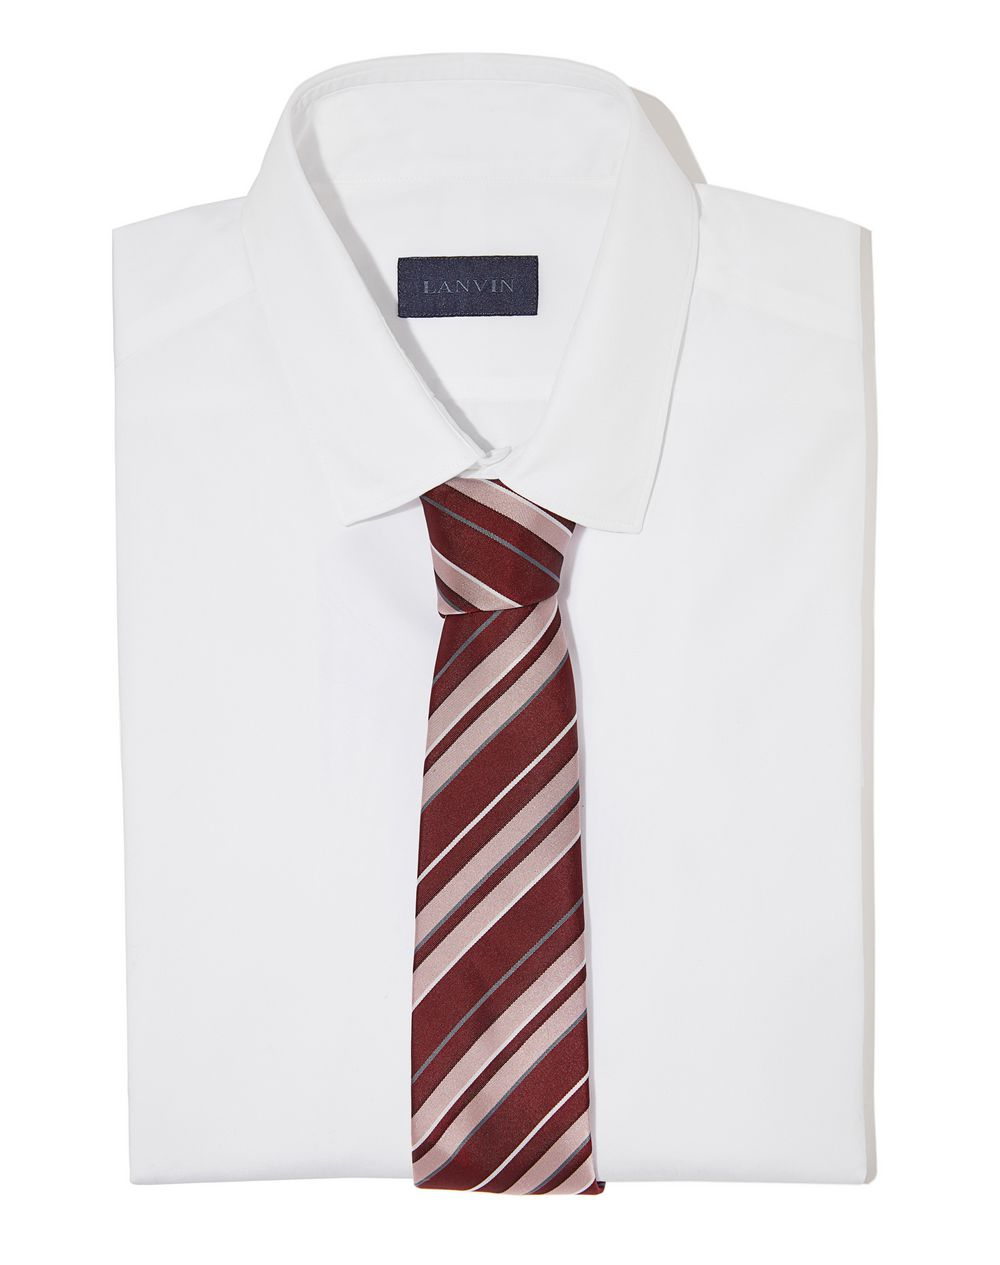 RED CLUB TIE - Lanvin